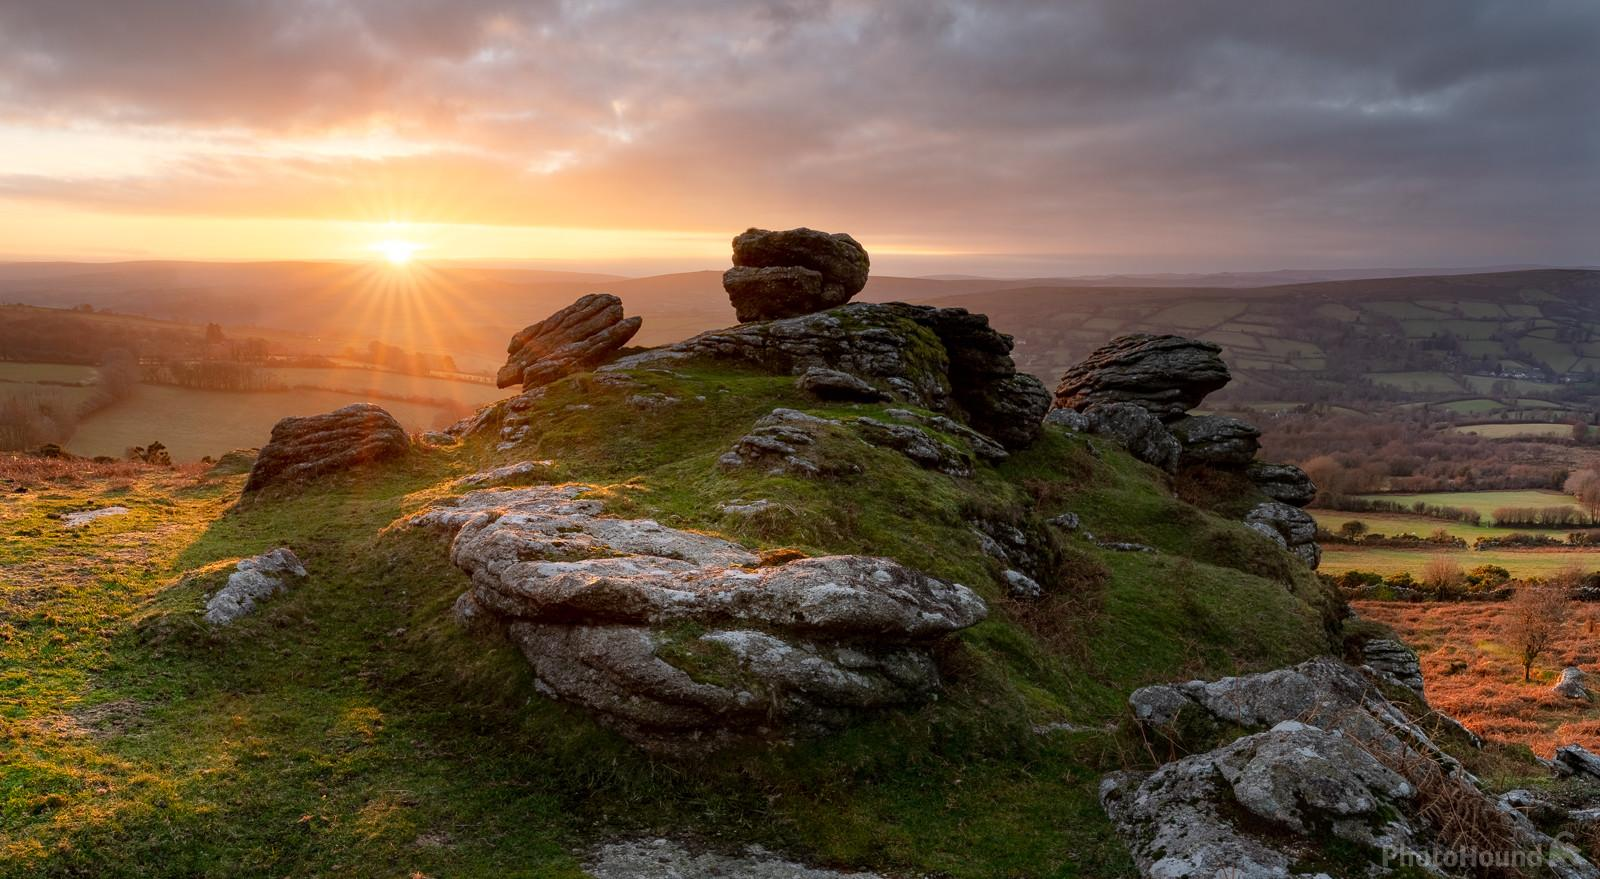 Image of Tunhill Rocks by Richard Fox